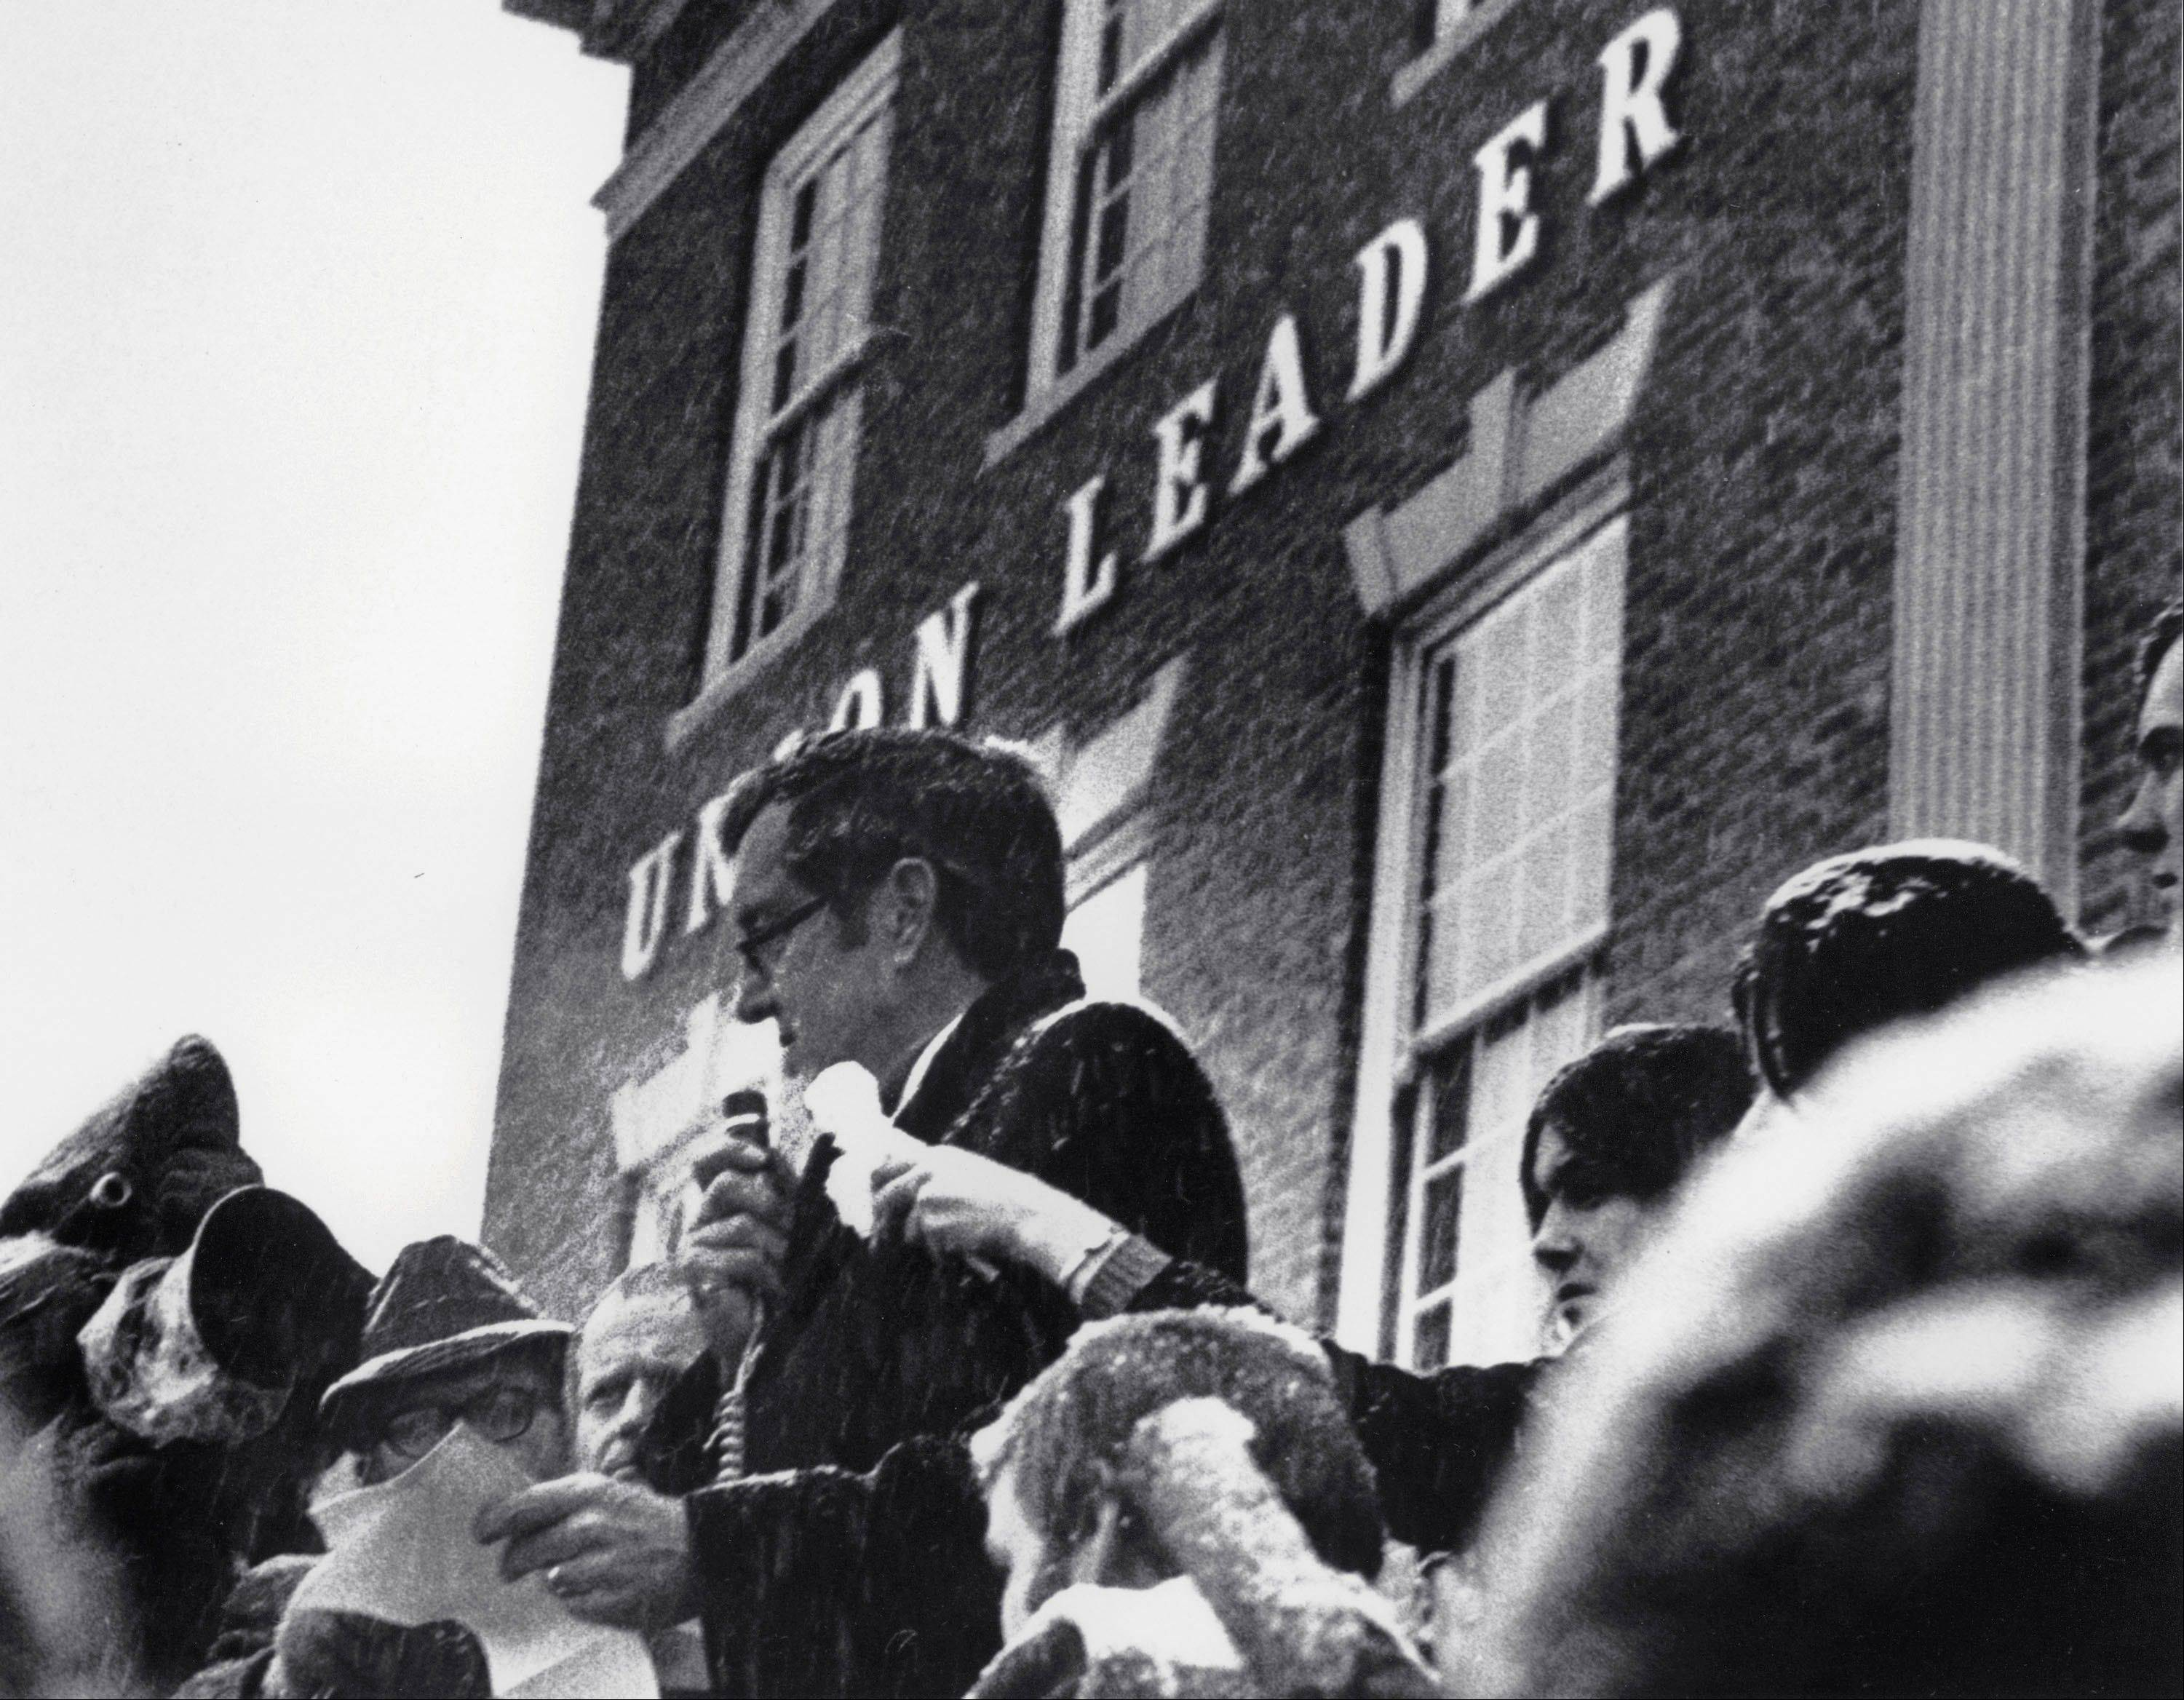 In 1972, Sen. Edmund Muskie, D-Maine, denounces conservative Manchester Union Leader publisher William Loeb in front of the newspaper's Manchester, N.H., building. Muskie's emotional speech came as he campaigned for the New Hampshire primary and the Democratic presidential nomination, which slid off the tracks after it was reported that he had cried in response to the newspaper's attack on his wife. Muskie sustained until his death that it had been melted snowflakes, not a tear, in his eye.